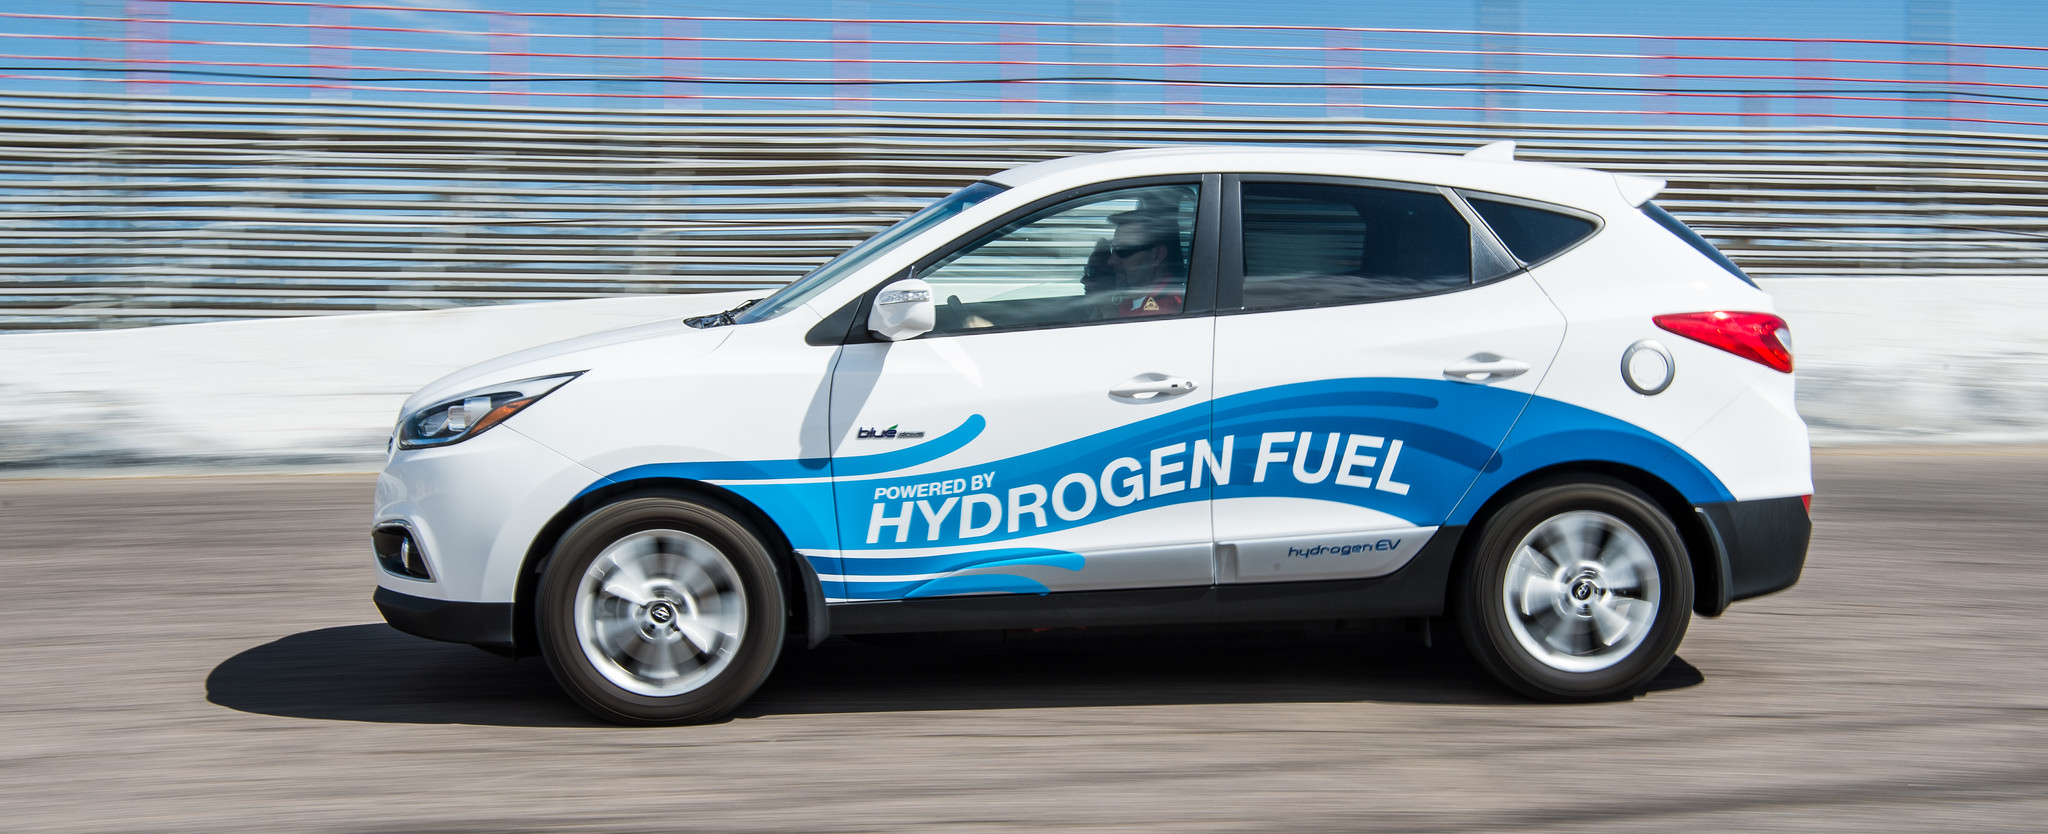 Hydrogen cars may be the future - they are not yet the present